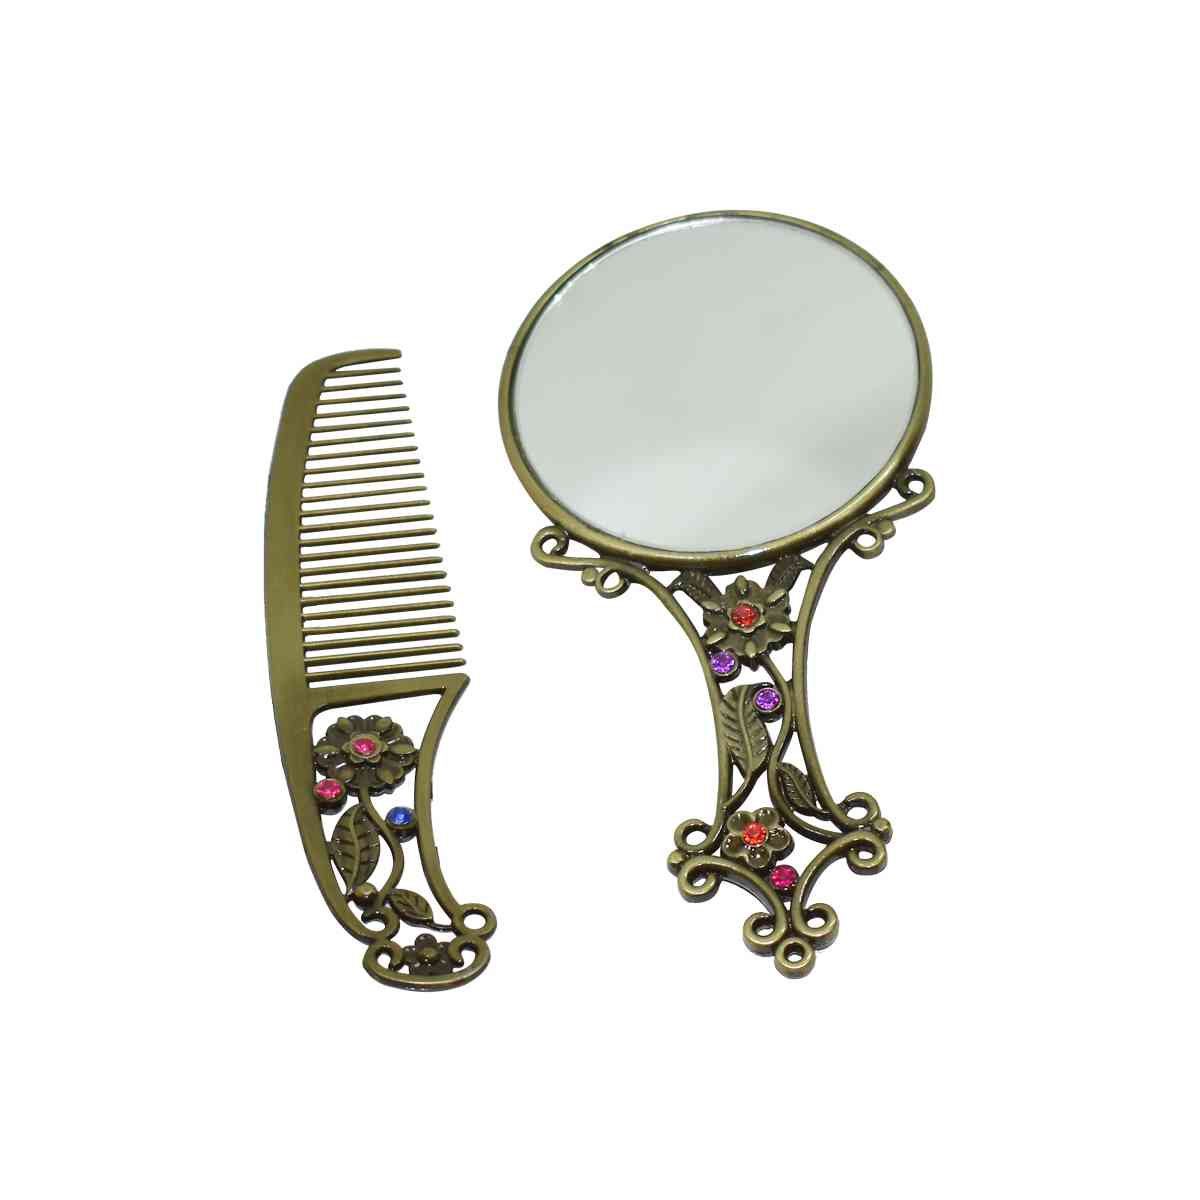 Bad Feng Shui Mirror Placement Feng Shui Mirror Comb मरर कब Buy Online